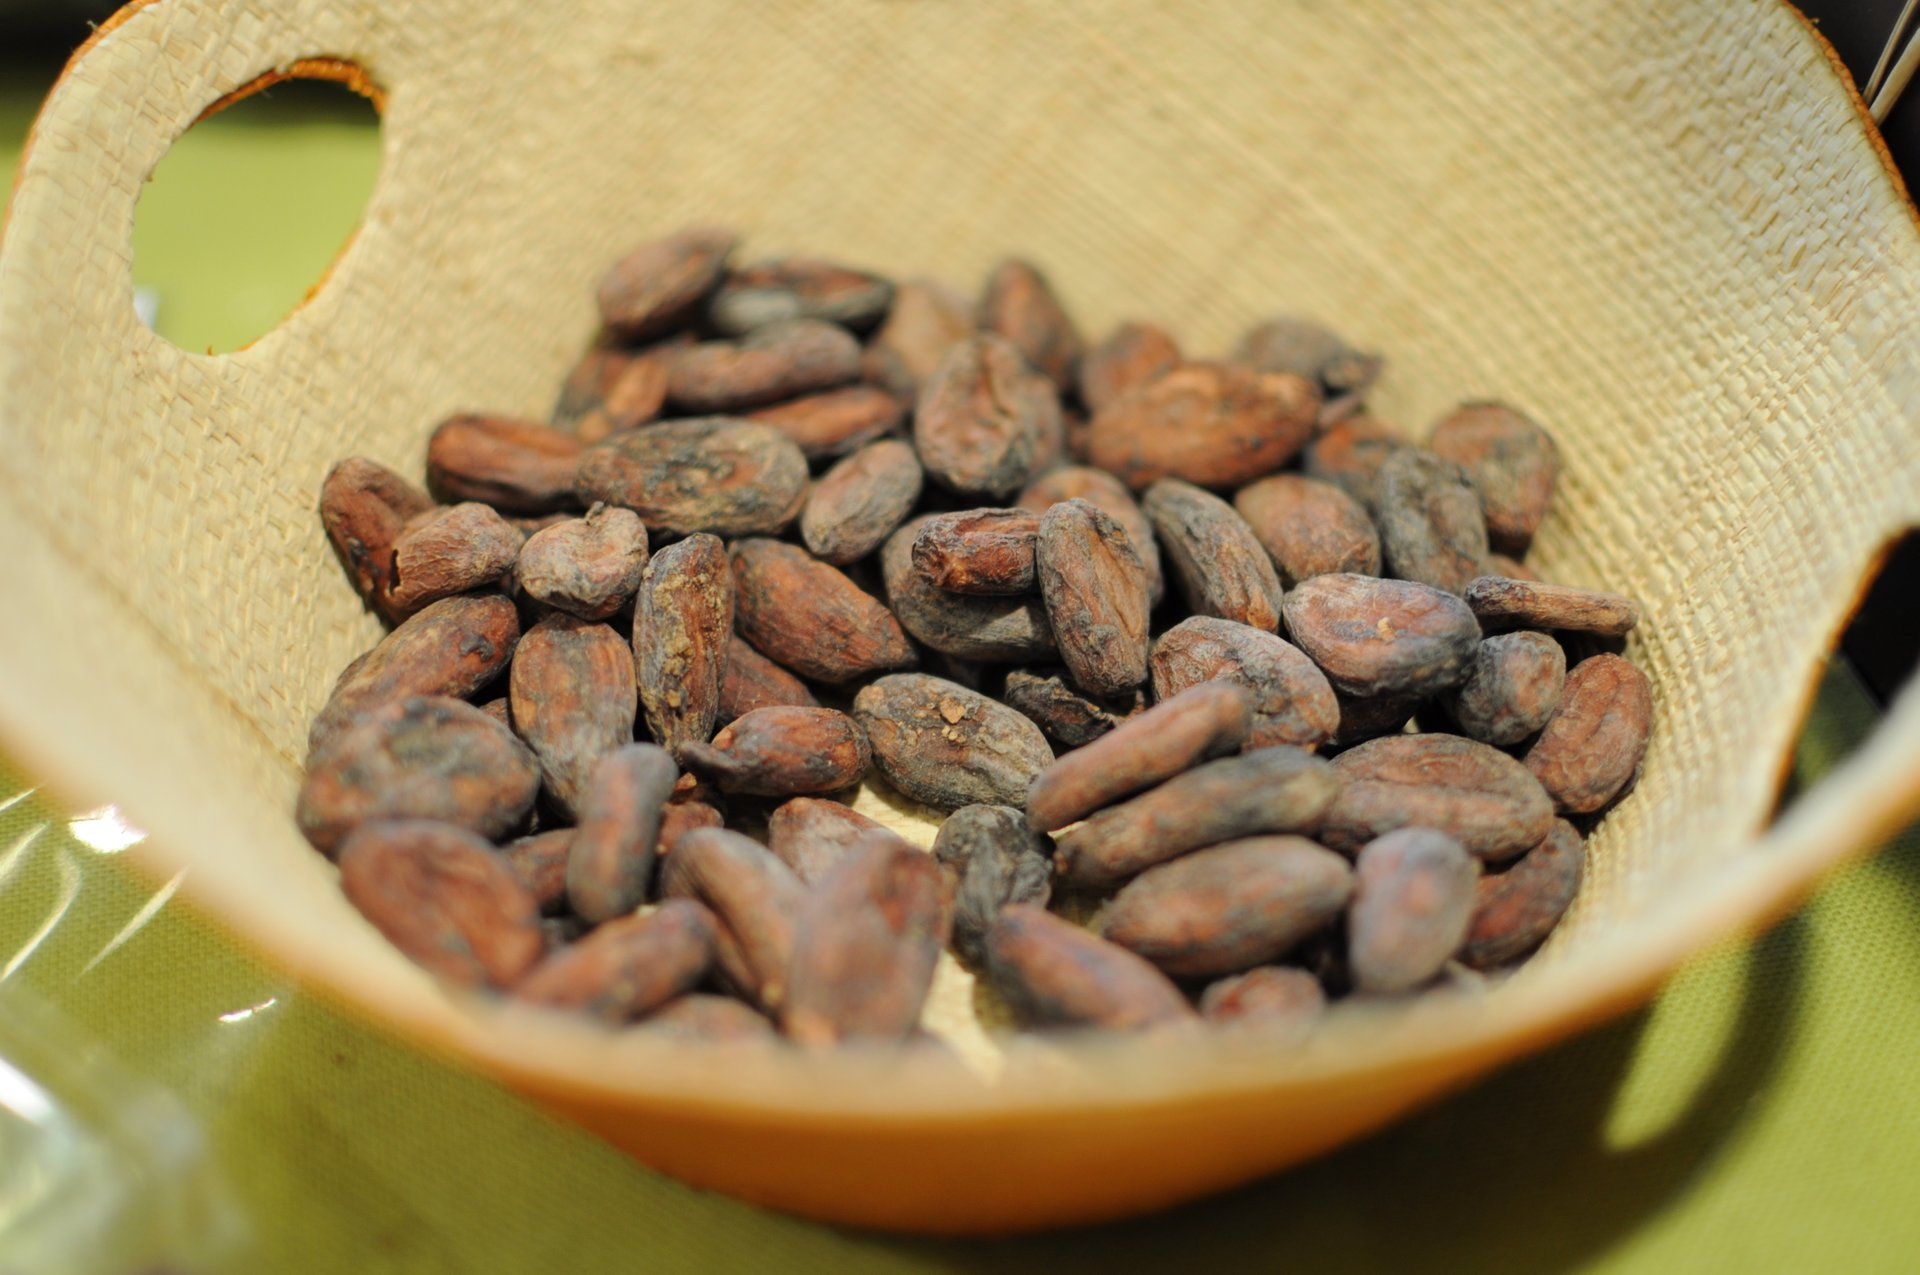 Cocoa Harvest Season in Madagascar 2019 - Best Time